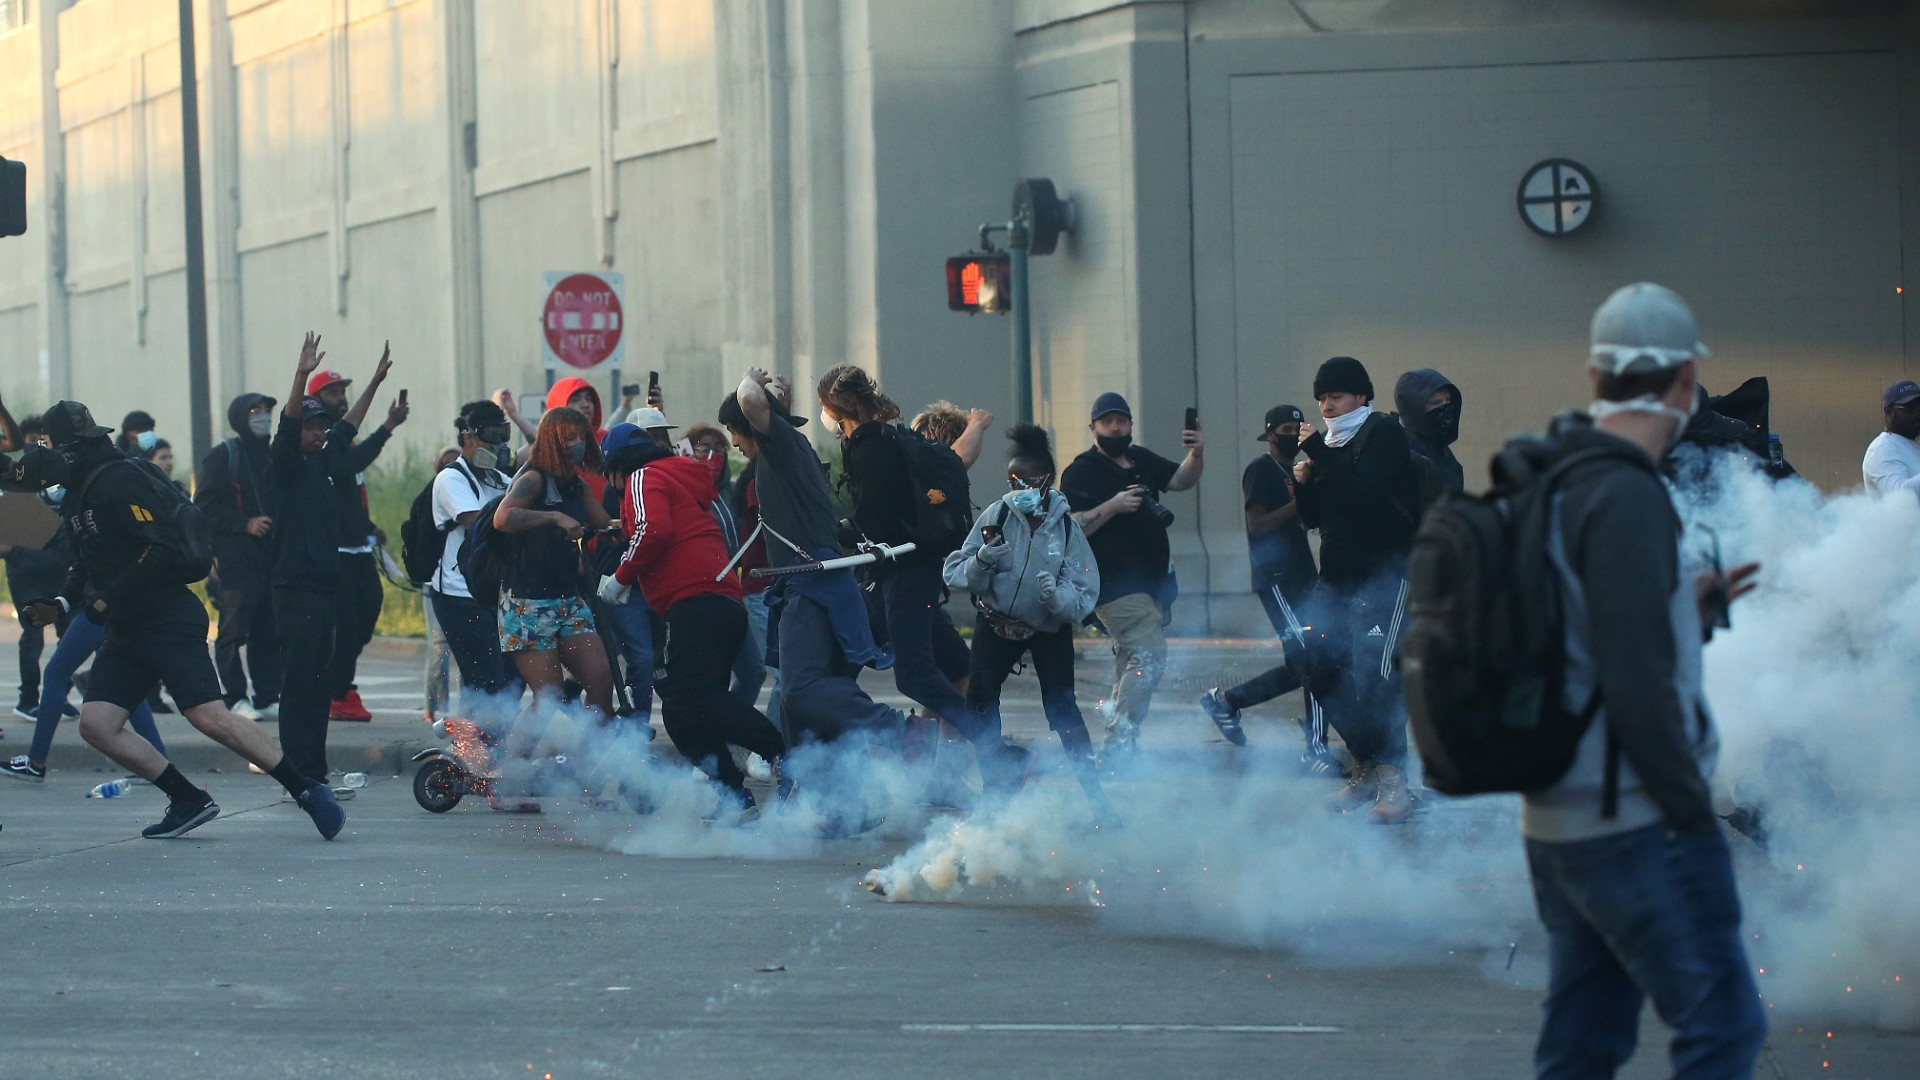 People run as tear gas canisters land near them during a protest sparked by the death of George Floyd while he was in police custody on May 29, 2020 in Minneapolis, Minnesota. (Scott Olson/Getty Images)